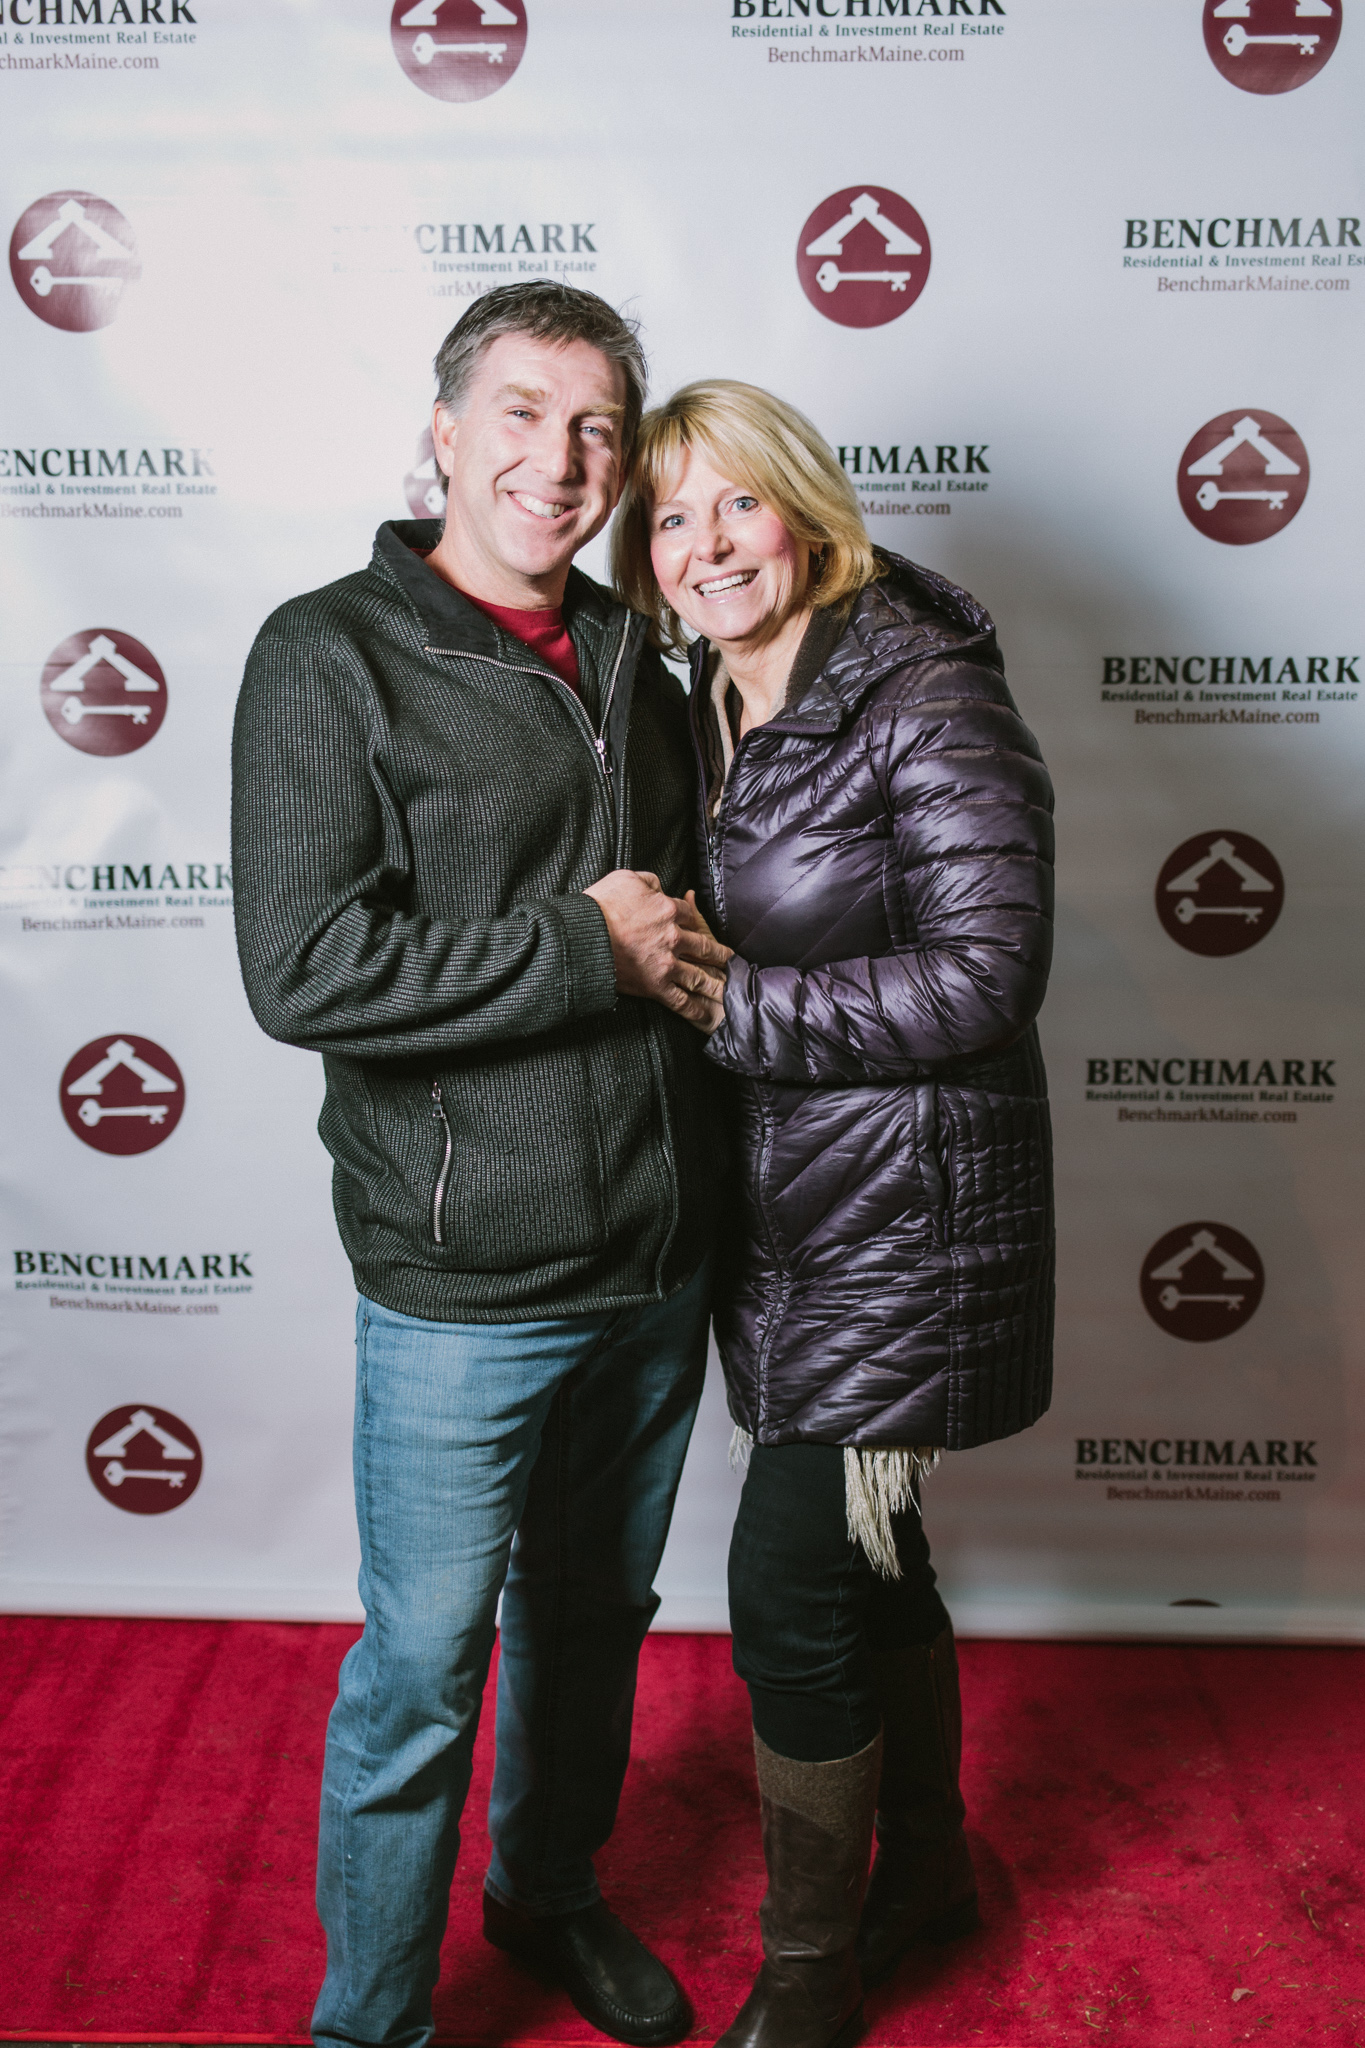 Benchmark_Holiday_Party_SR-047.jpg